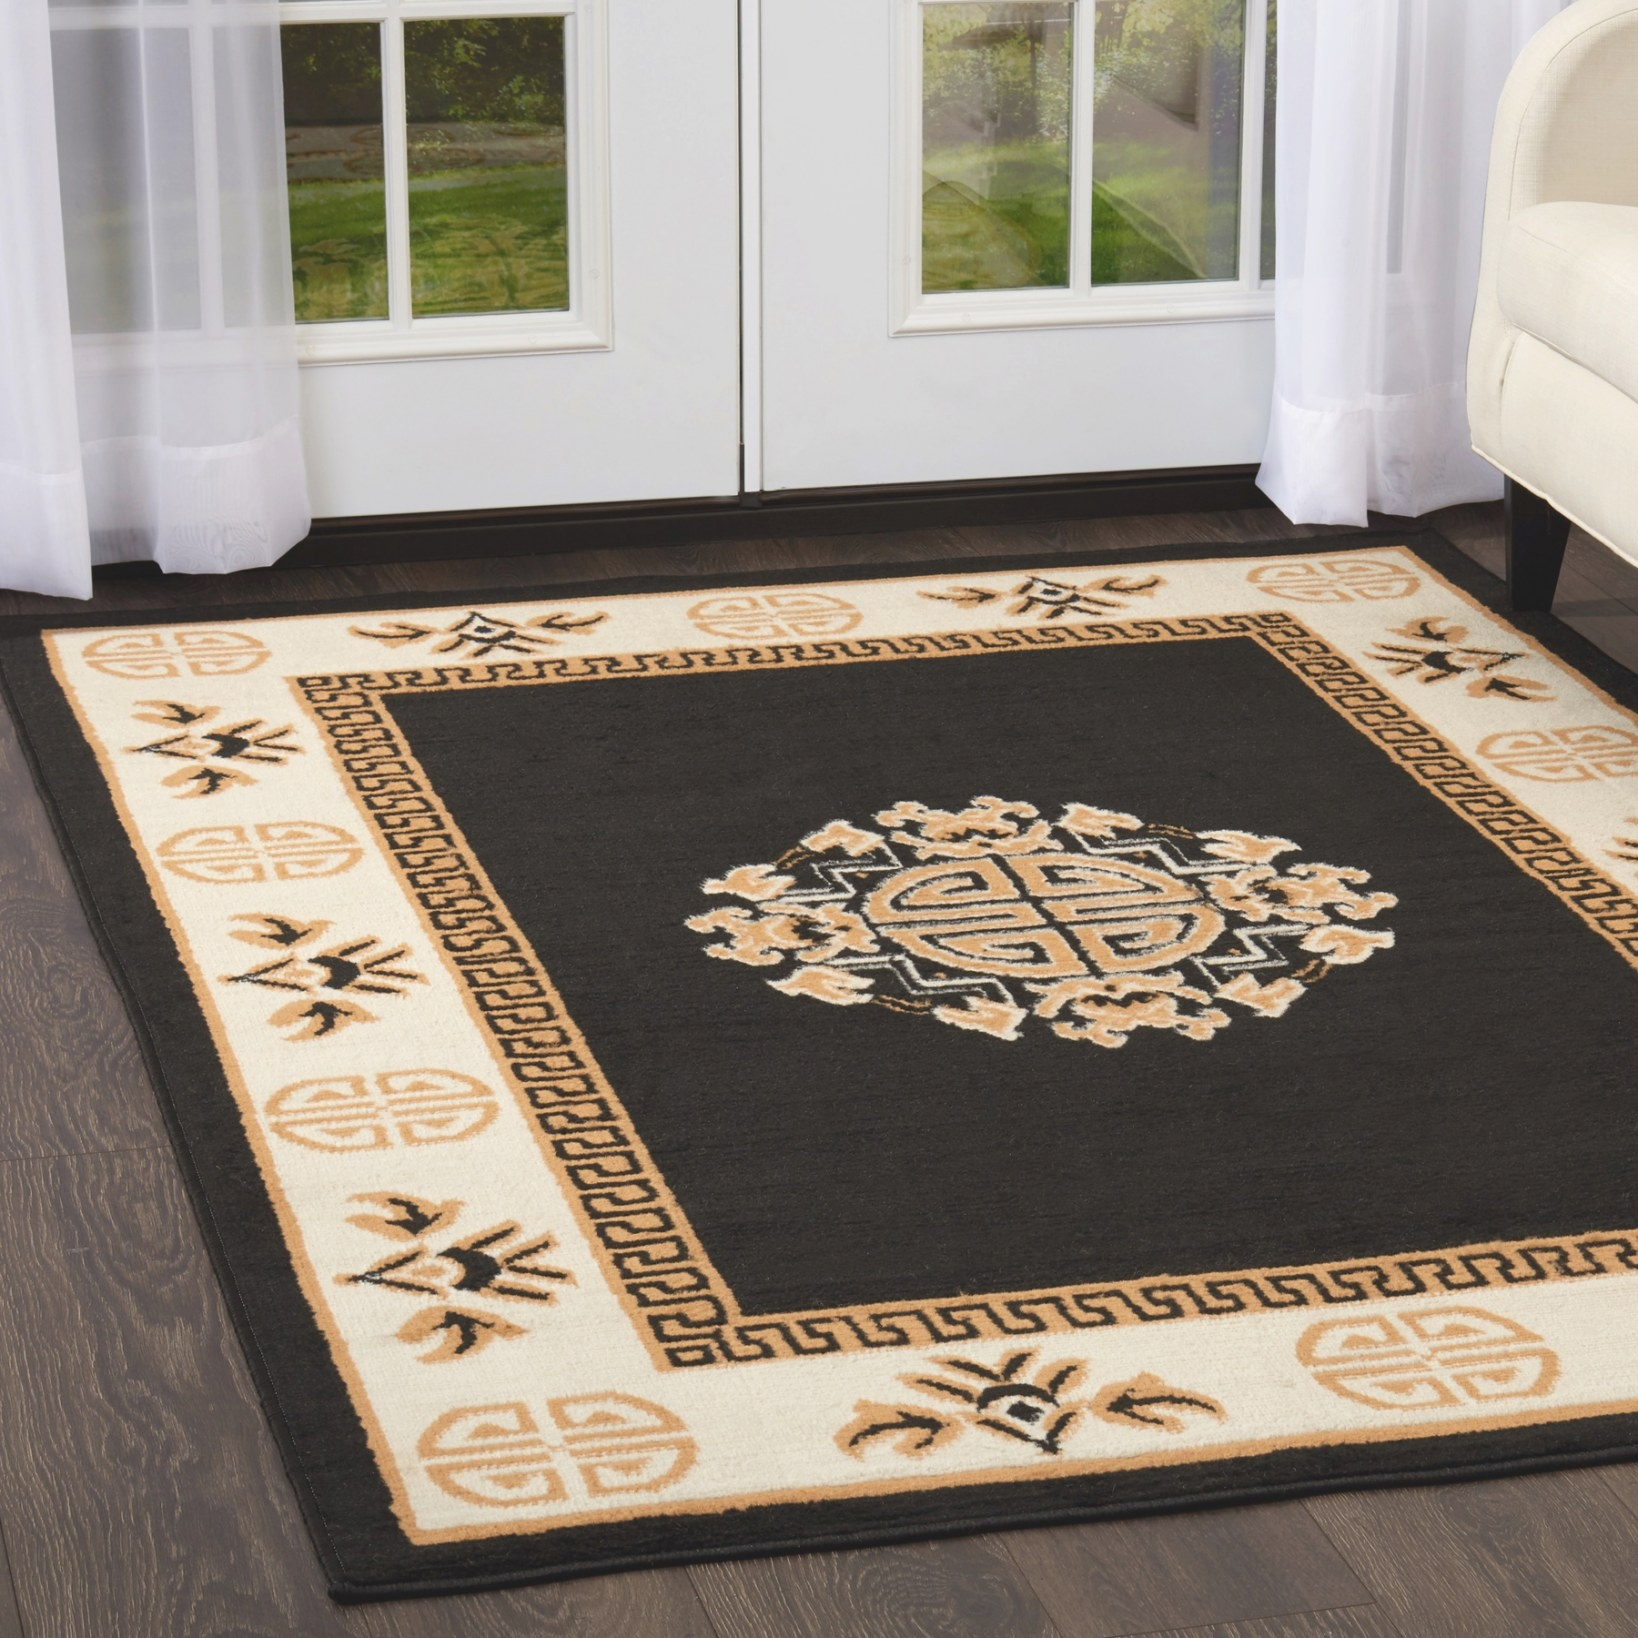 Oriental Medallion Area Rug Traditional 5X7 Persian Carpet within 5 X 7 Rugs